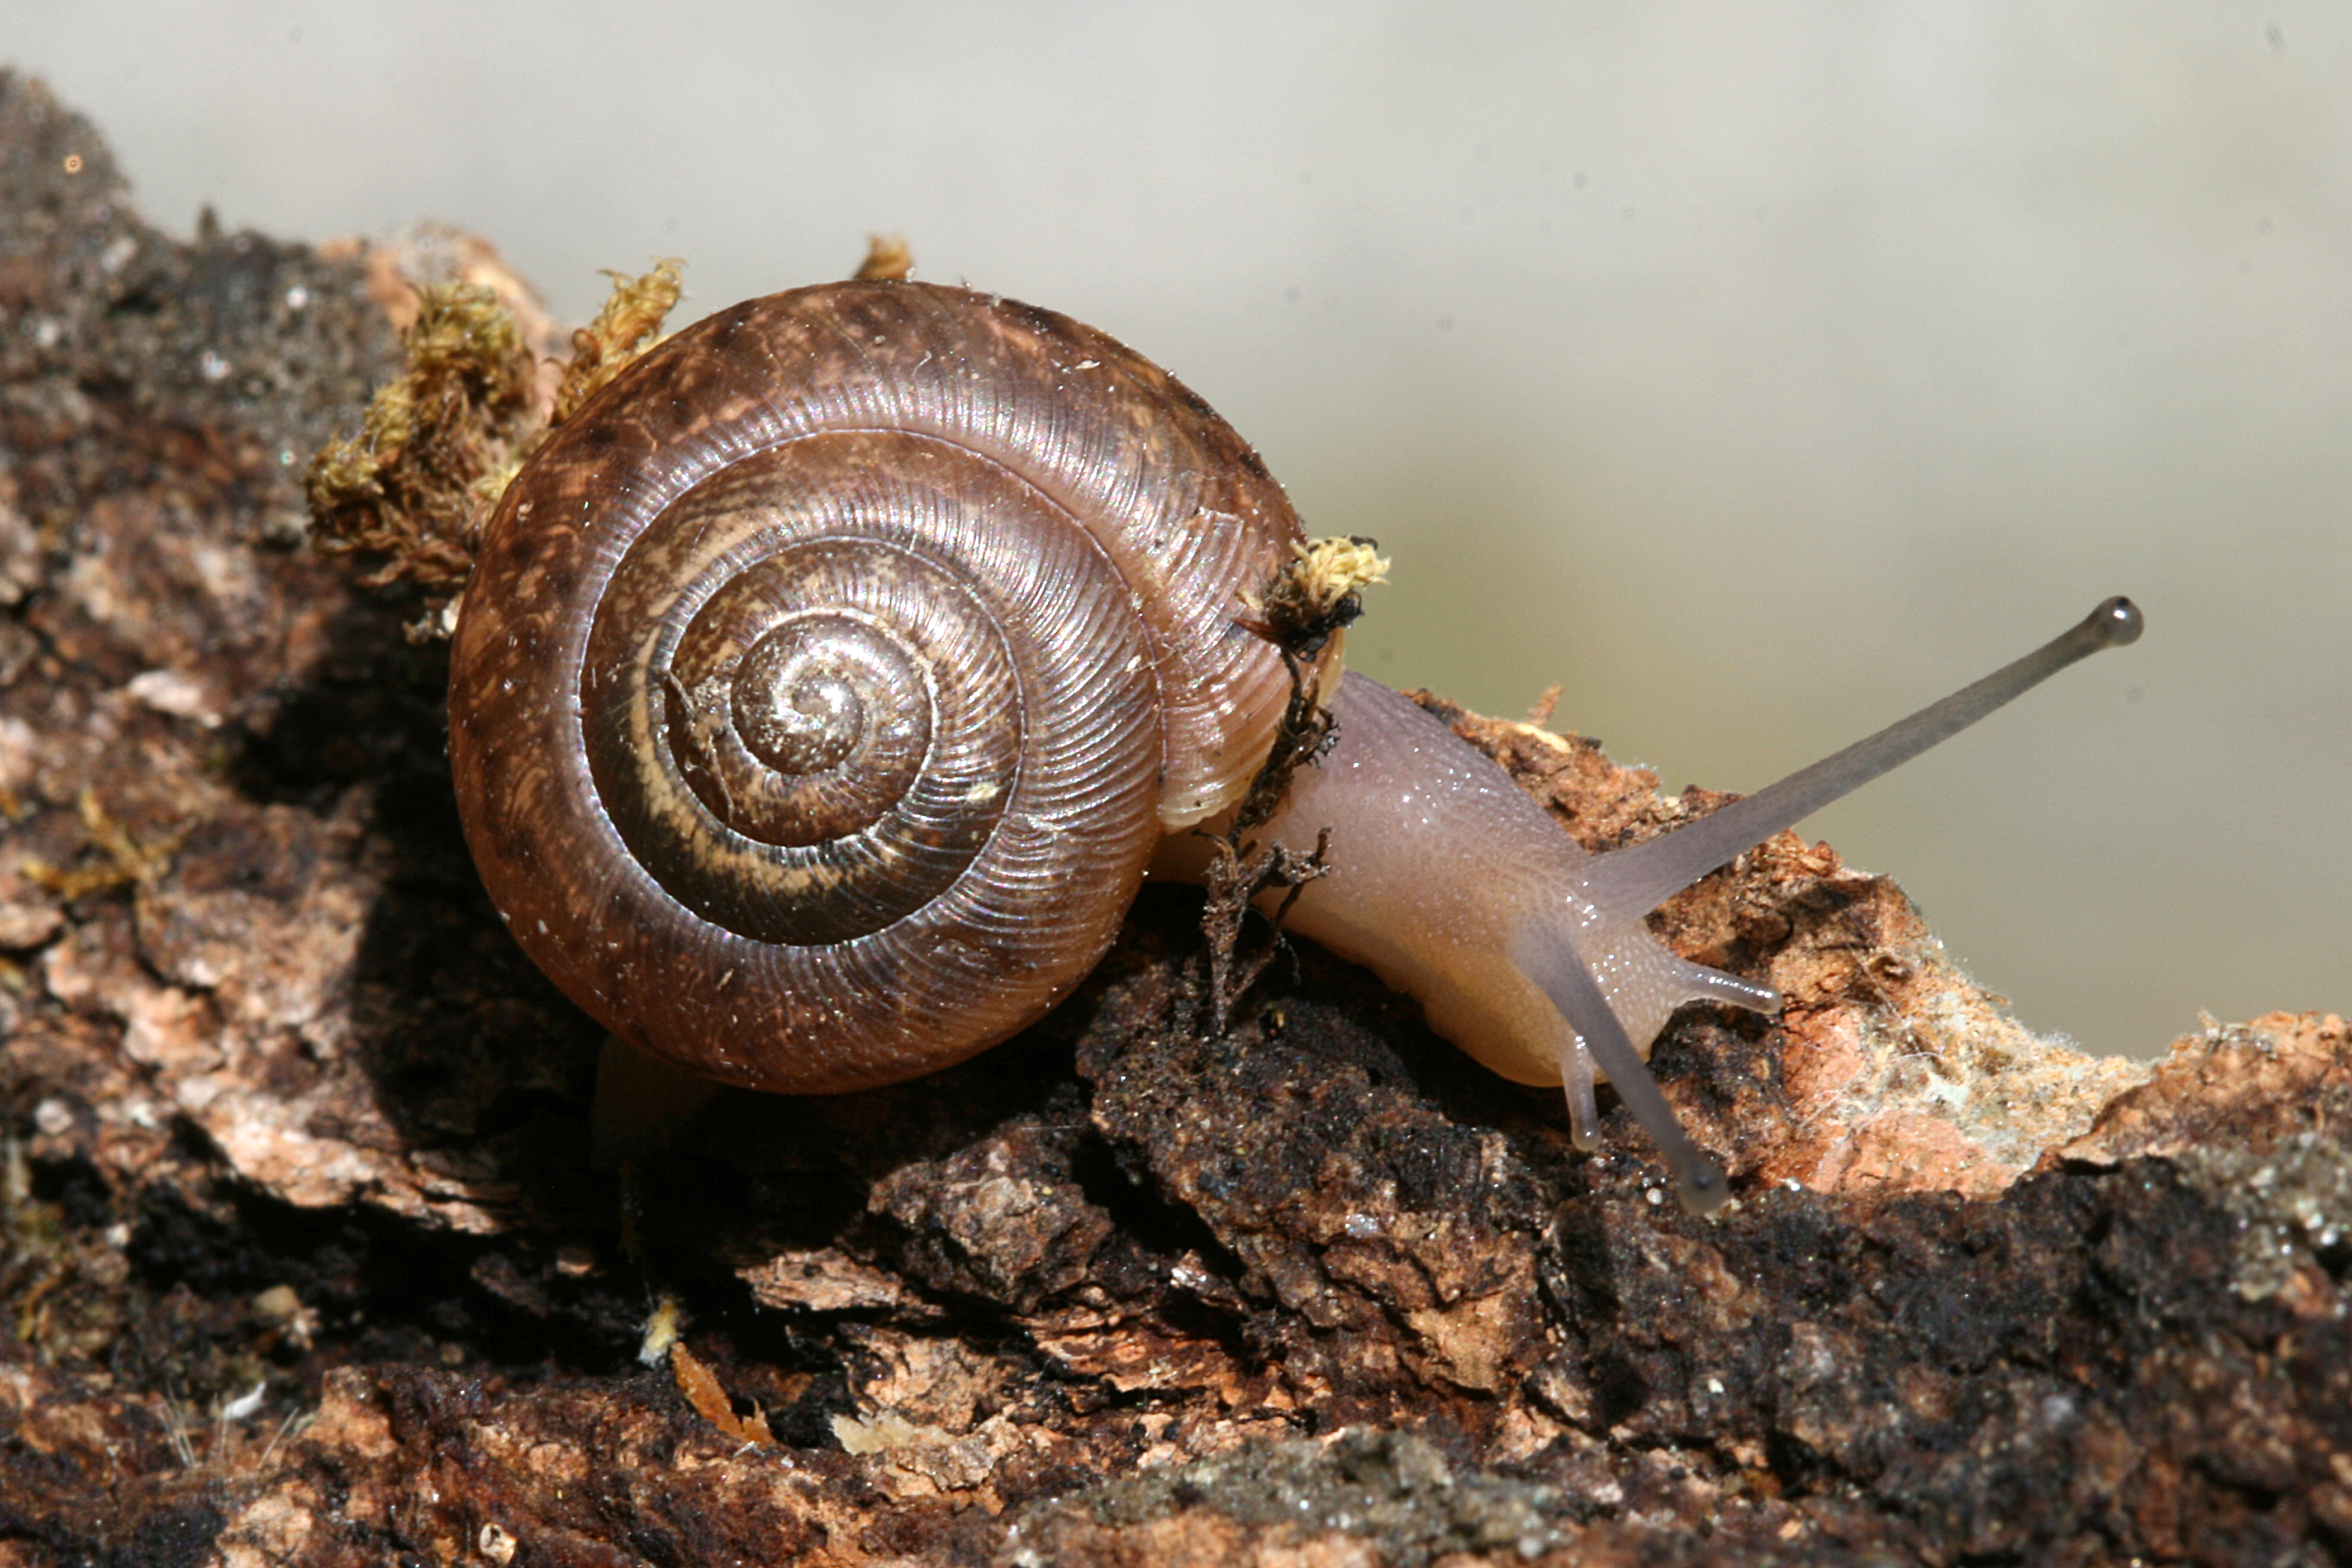 Land Snails - Welcome to a photographic journey through the fields ...